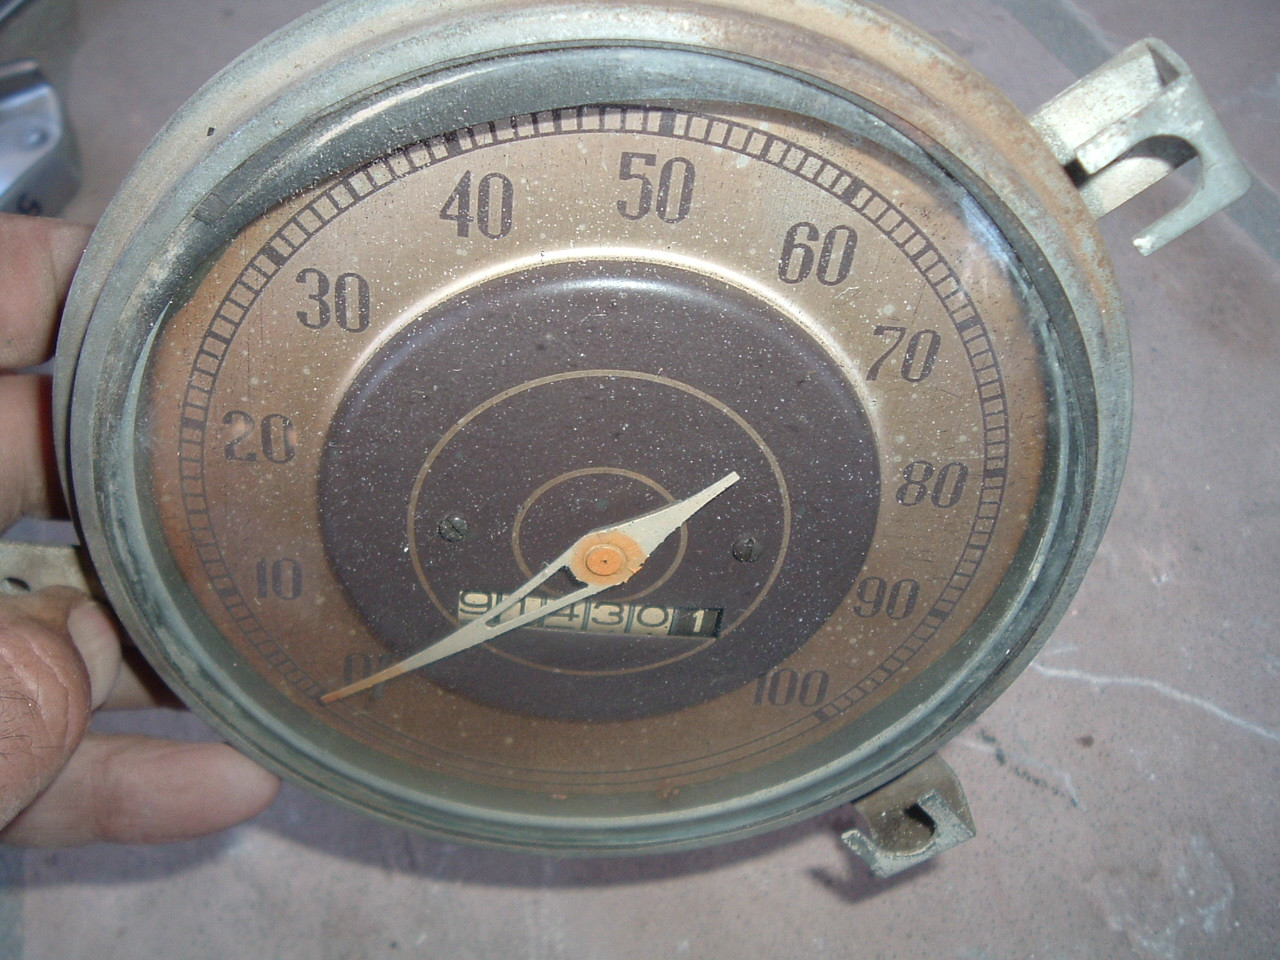 1938 plymouth speedometer assembly original (z 38plyspeedo)